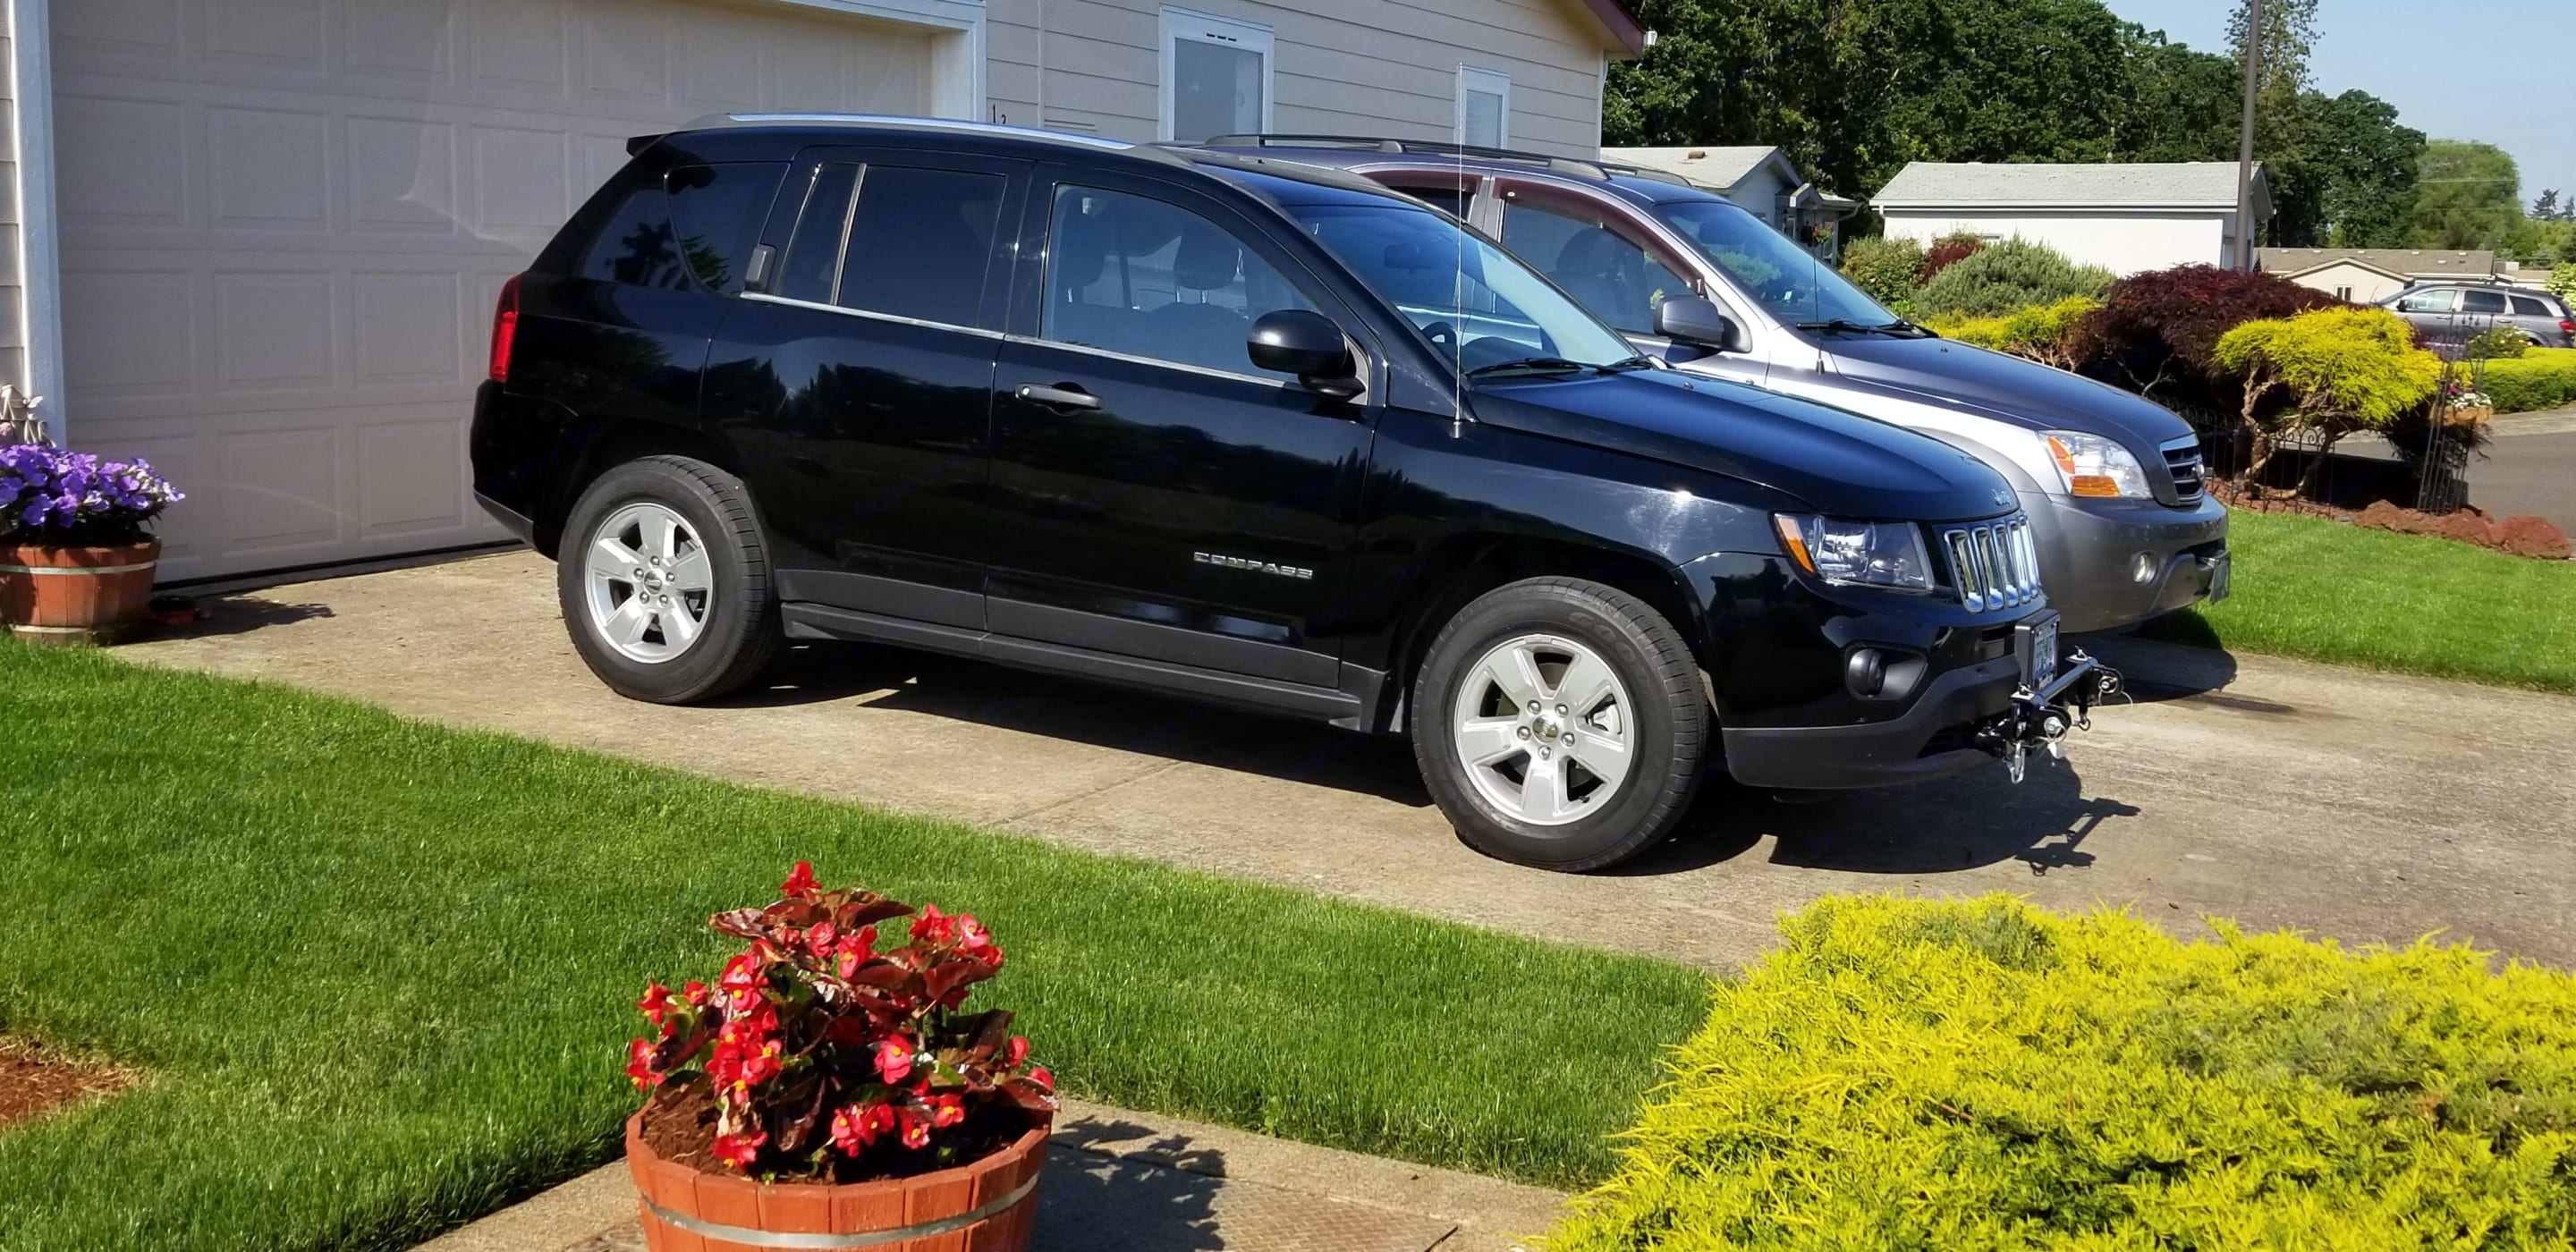 2014 Jeep Compass (manual transmission) setup to pull behind our 2008 Class A Itasca Sunover 30' RV. Jeep Compass 2014